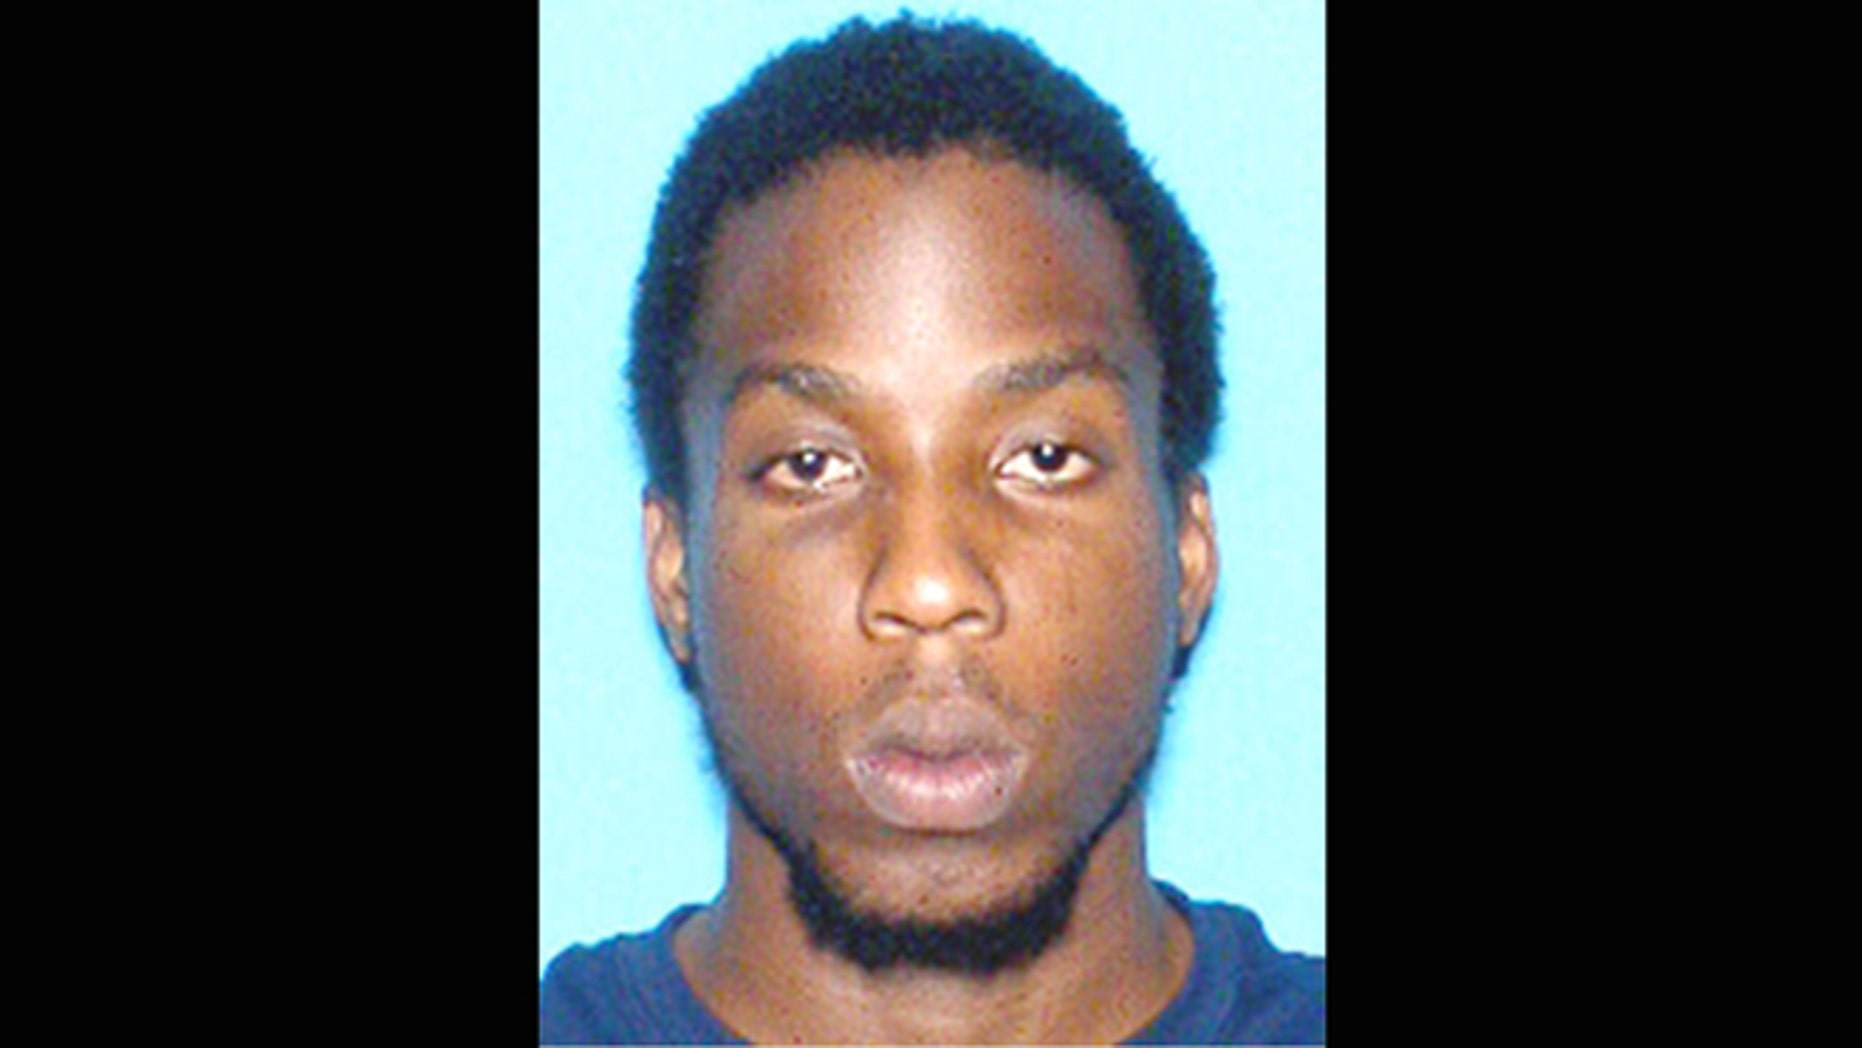 This image made available by the Miami Police Department on Sunday, July 29, 2012 shows Erin Cash. Police said Sunday that the 23-year-old has shot at least three people and is wanted on charges of attempted murder.